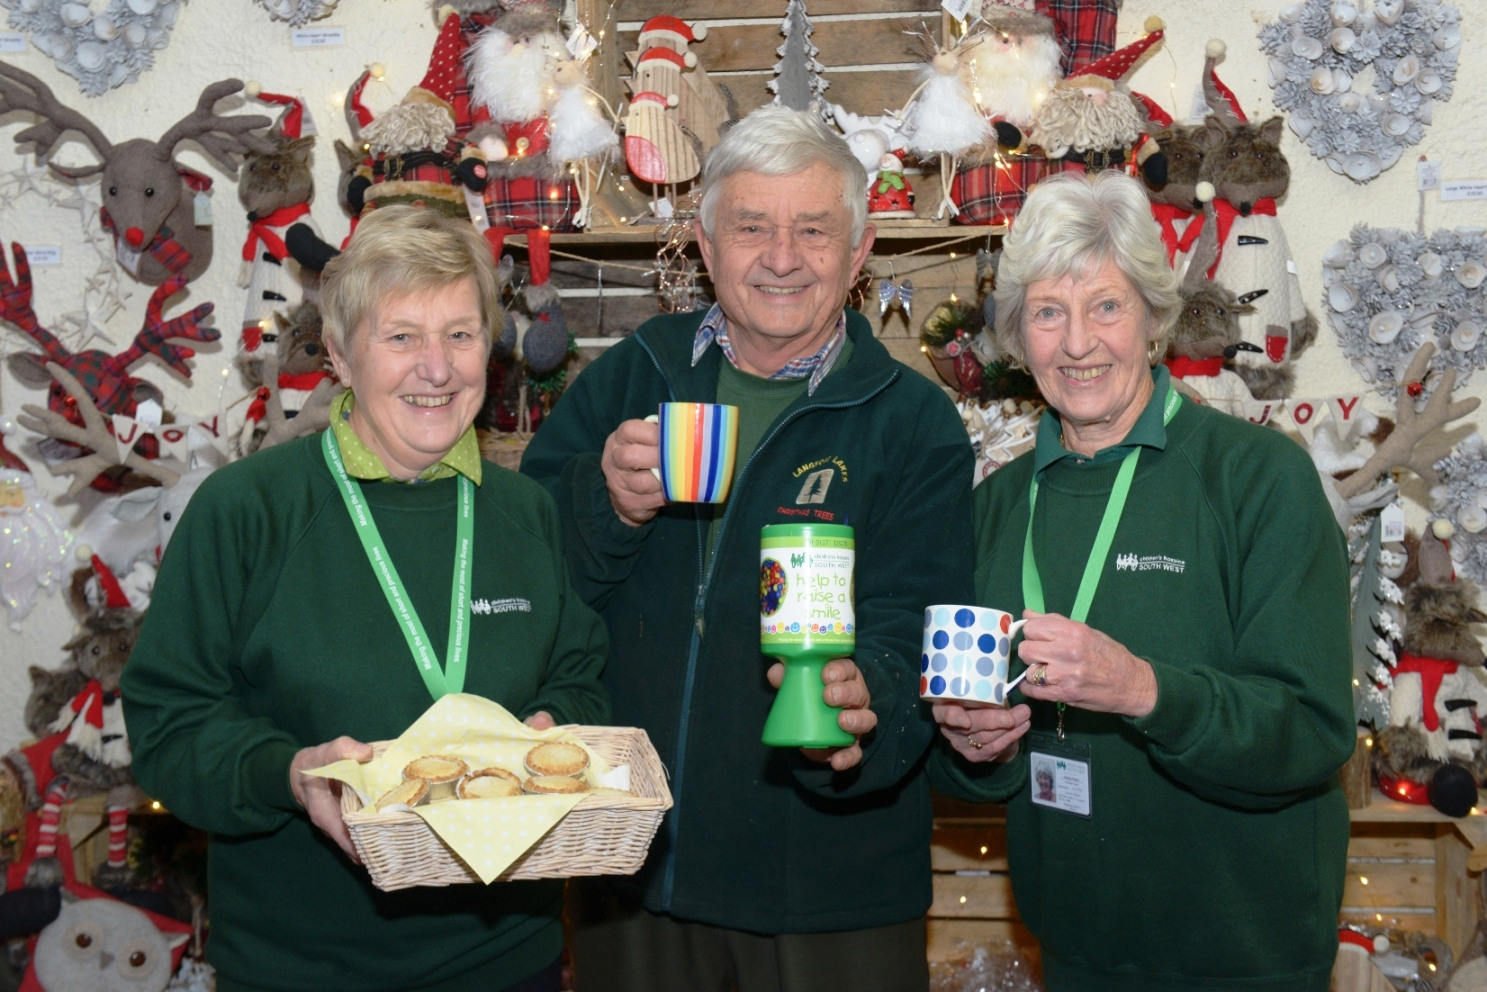 Donations raised for the Children's Hospice South West